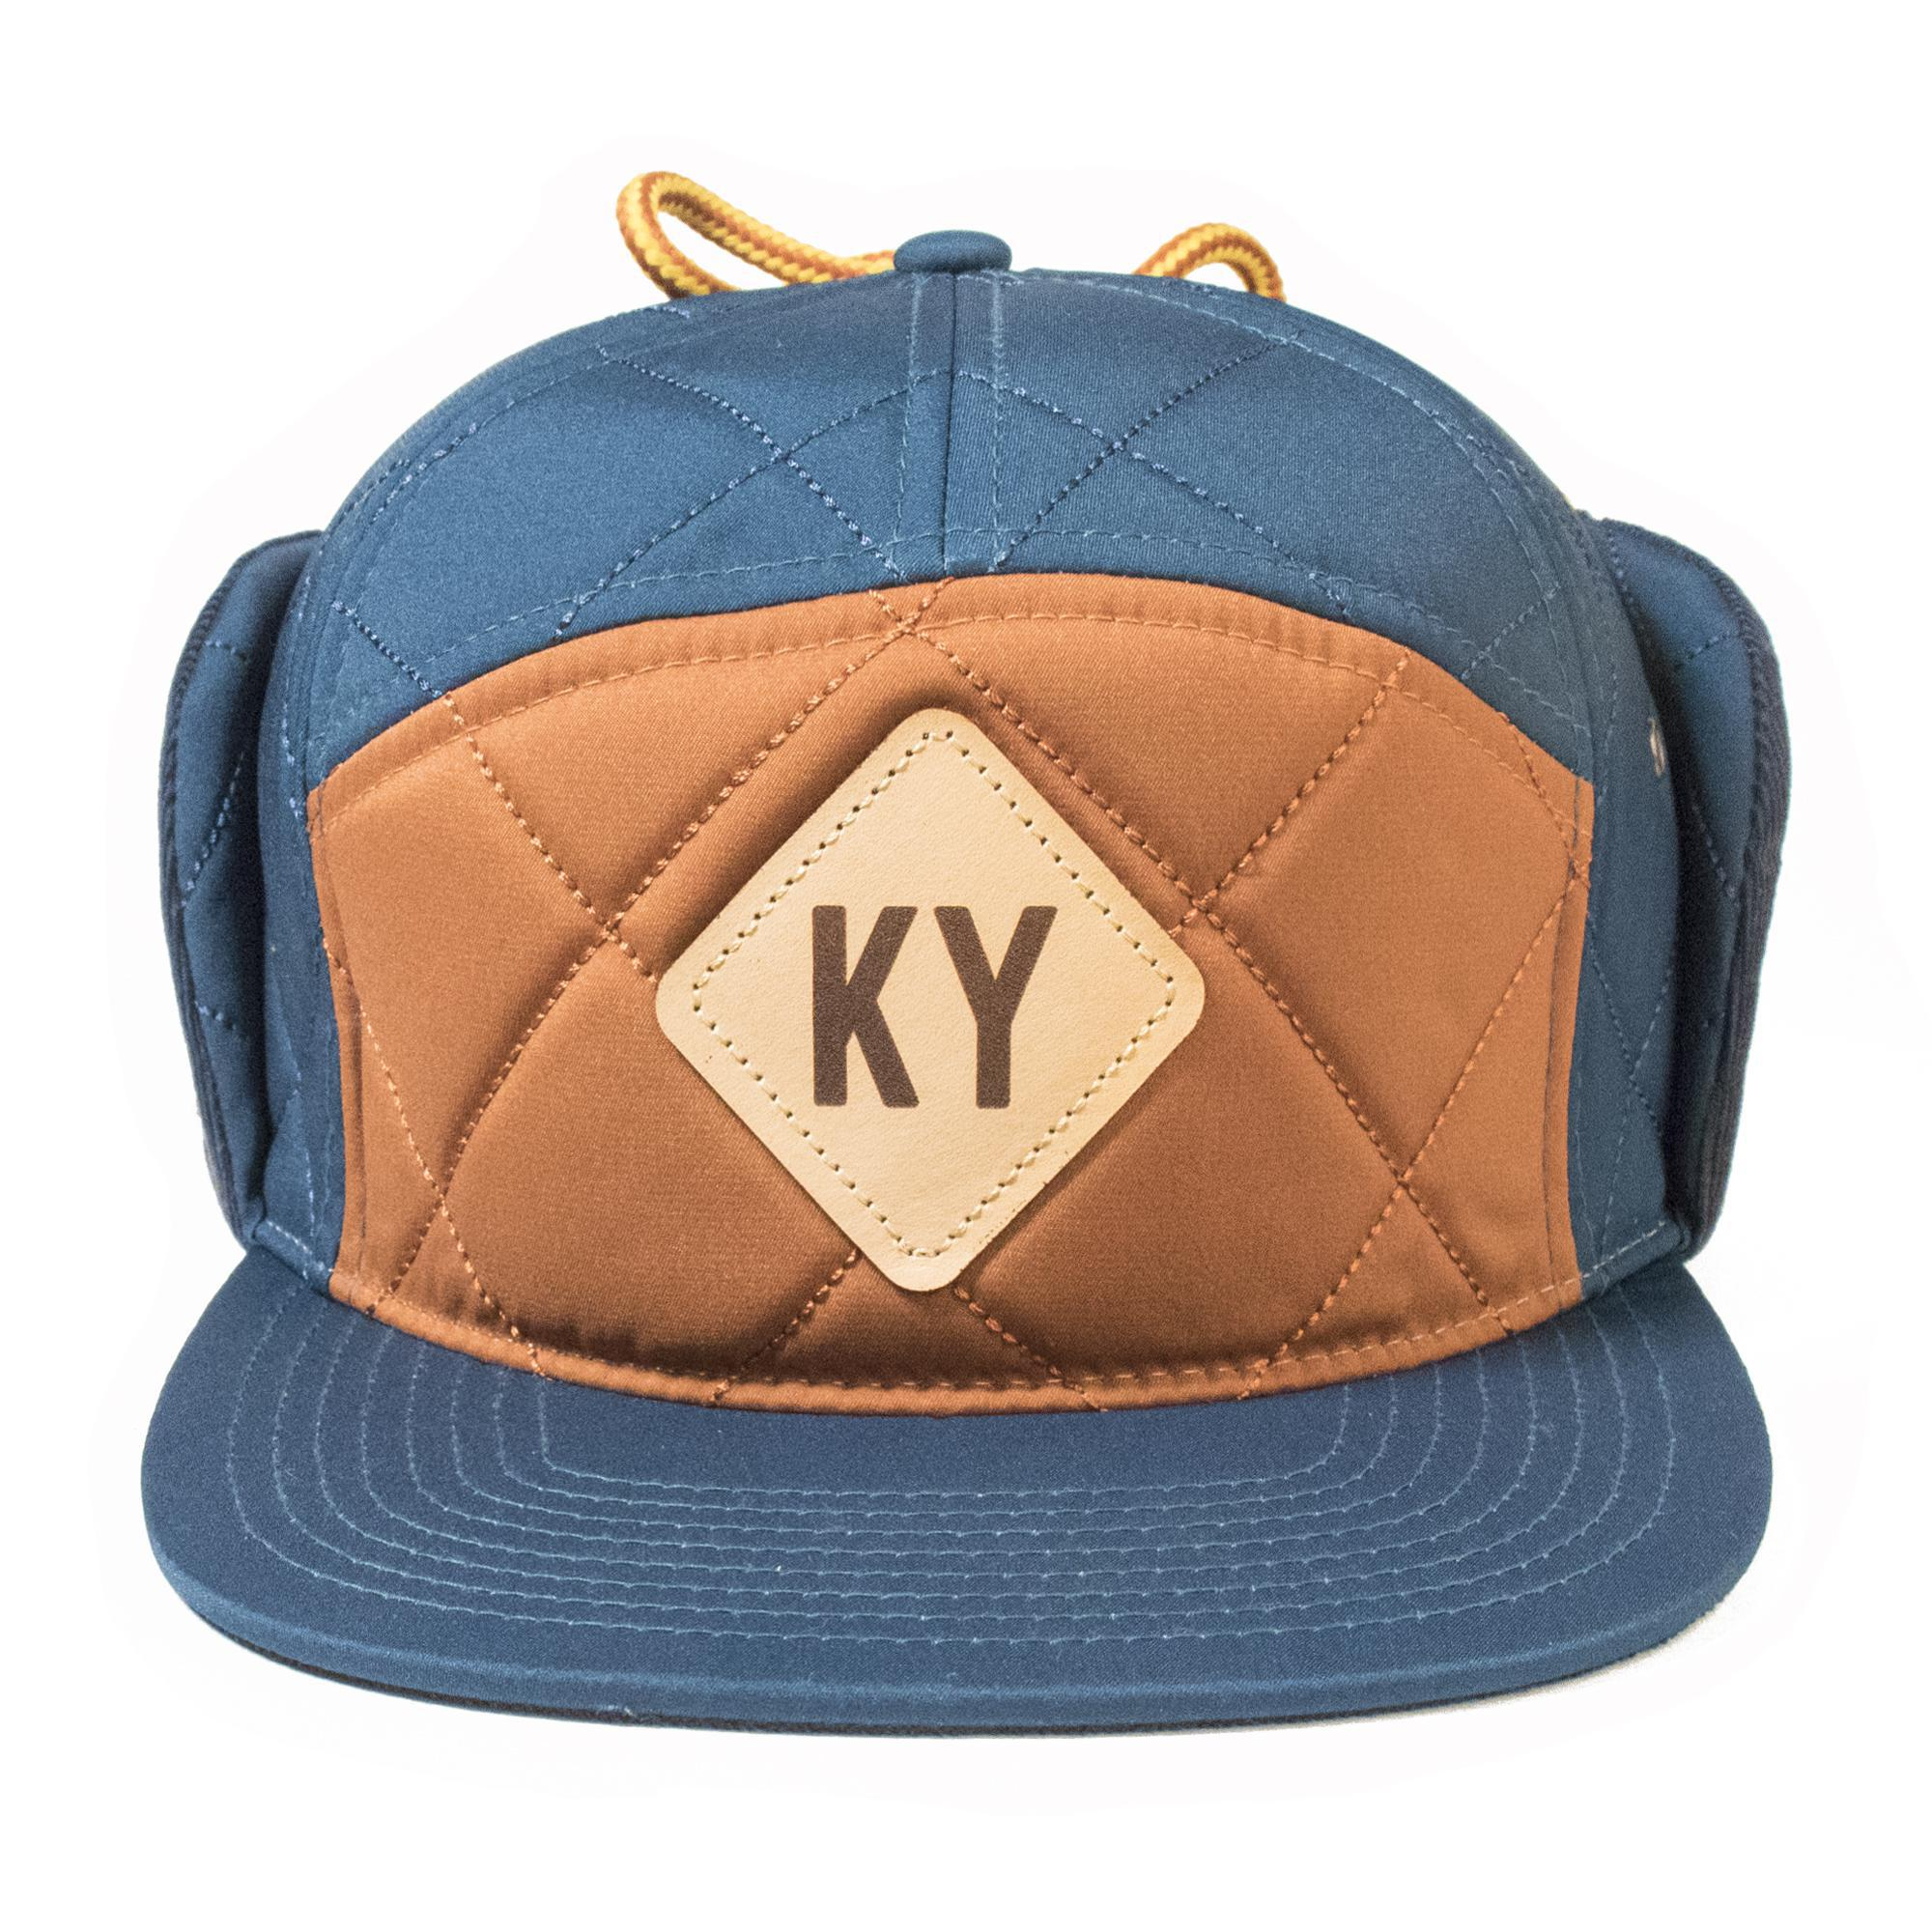 KY Flap Hat (Blue)-Hat-KY for KY Store